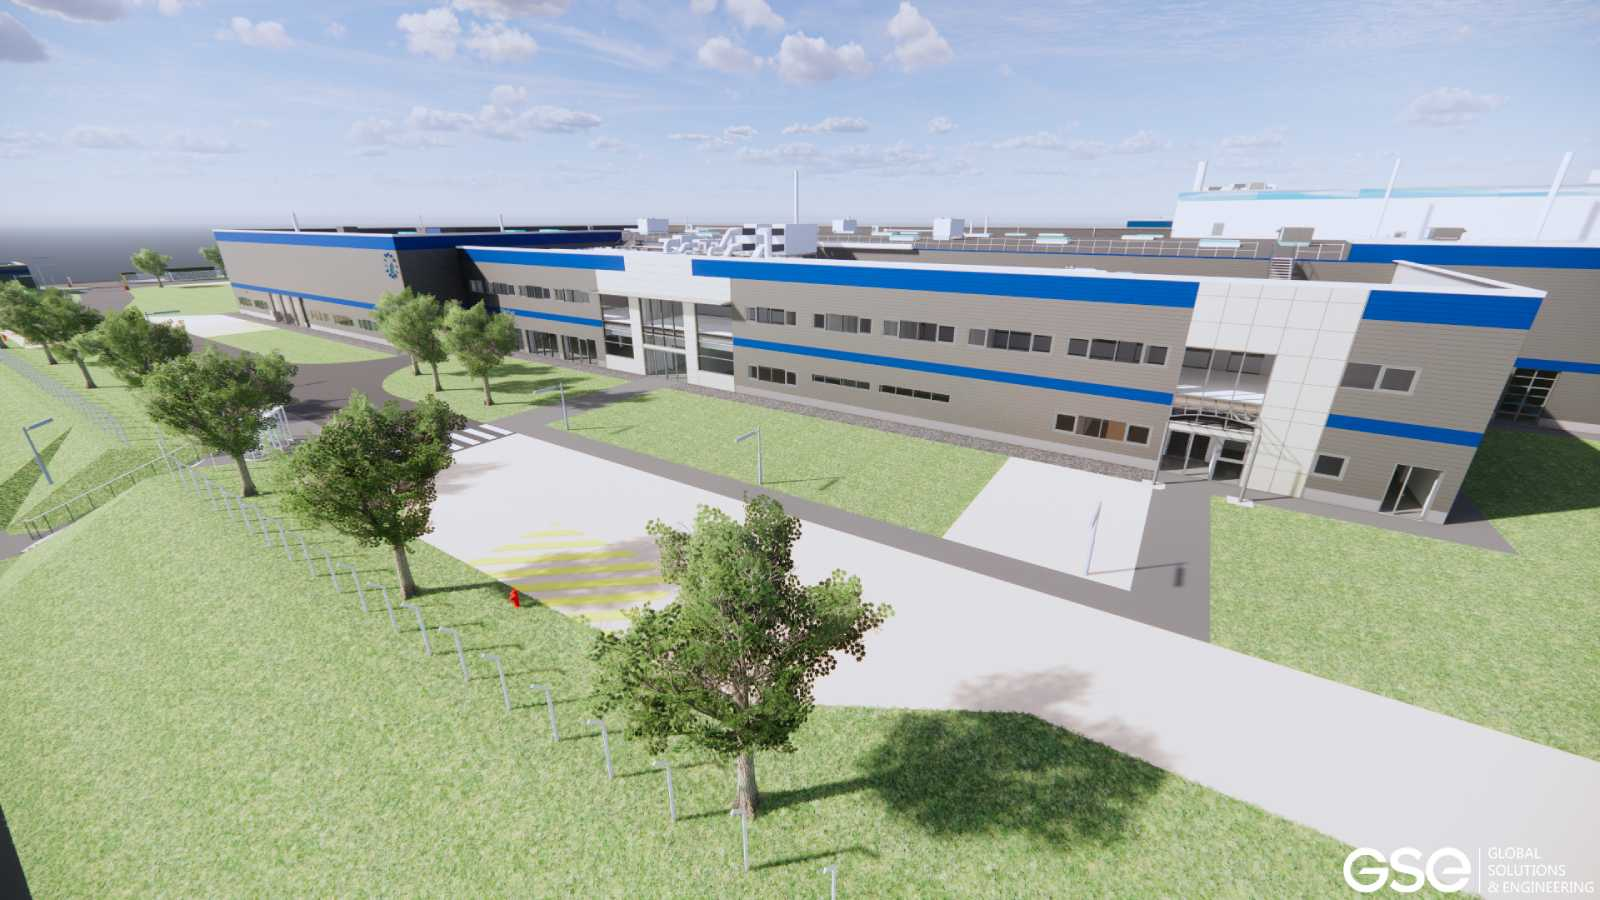 GSE to build LISI AEROSPACE's new 23,000 m² site